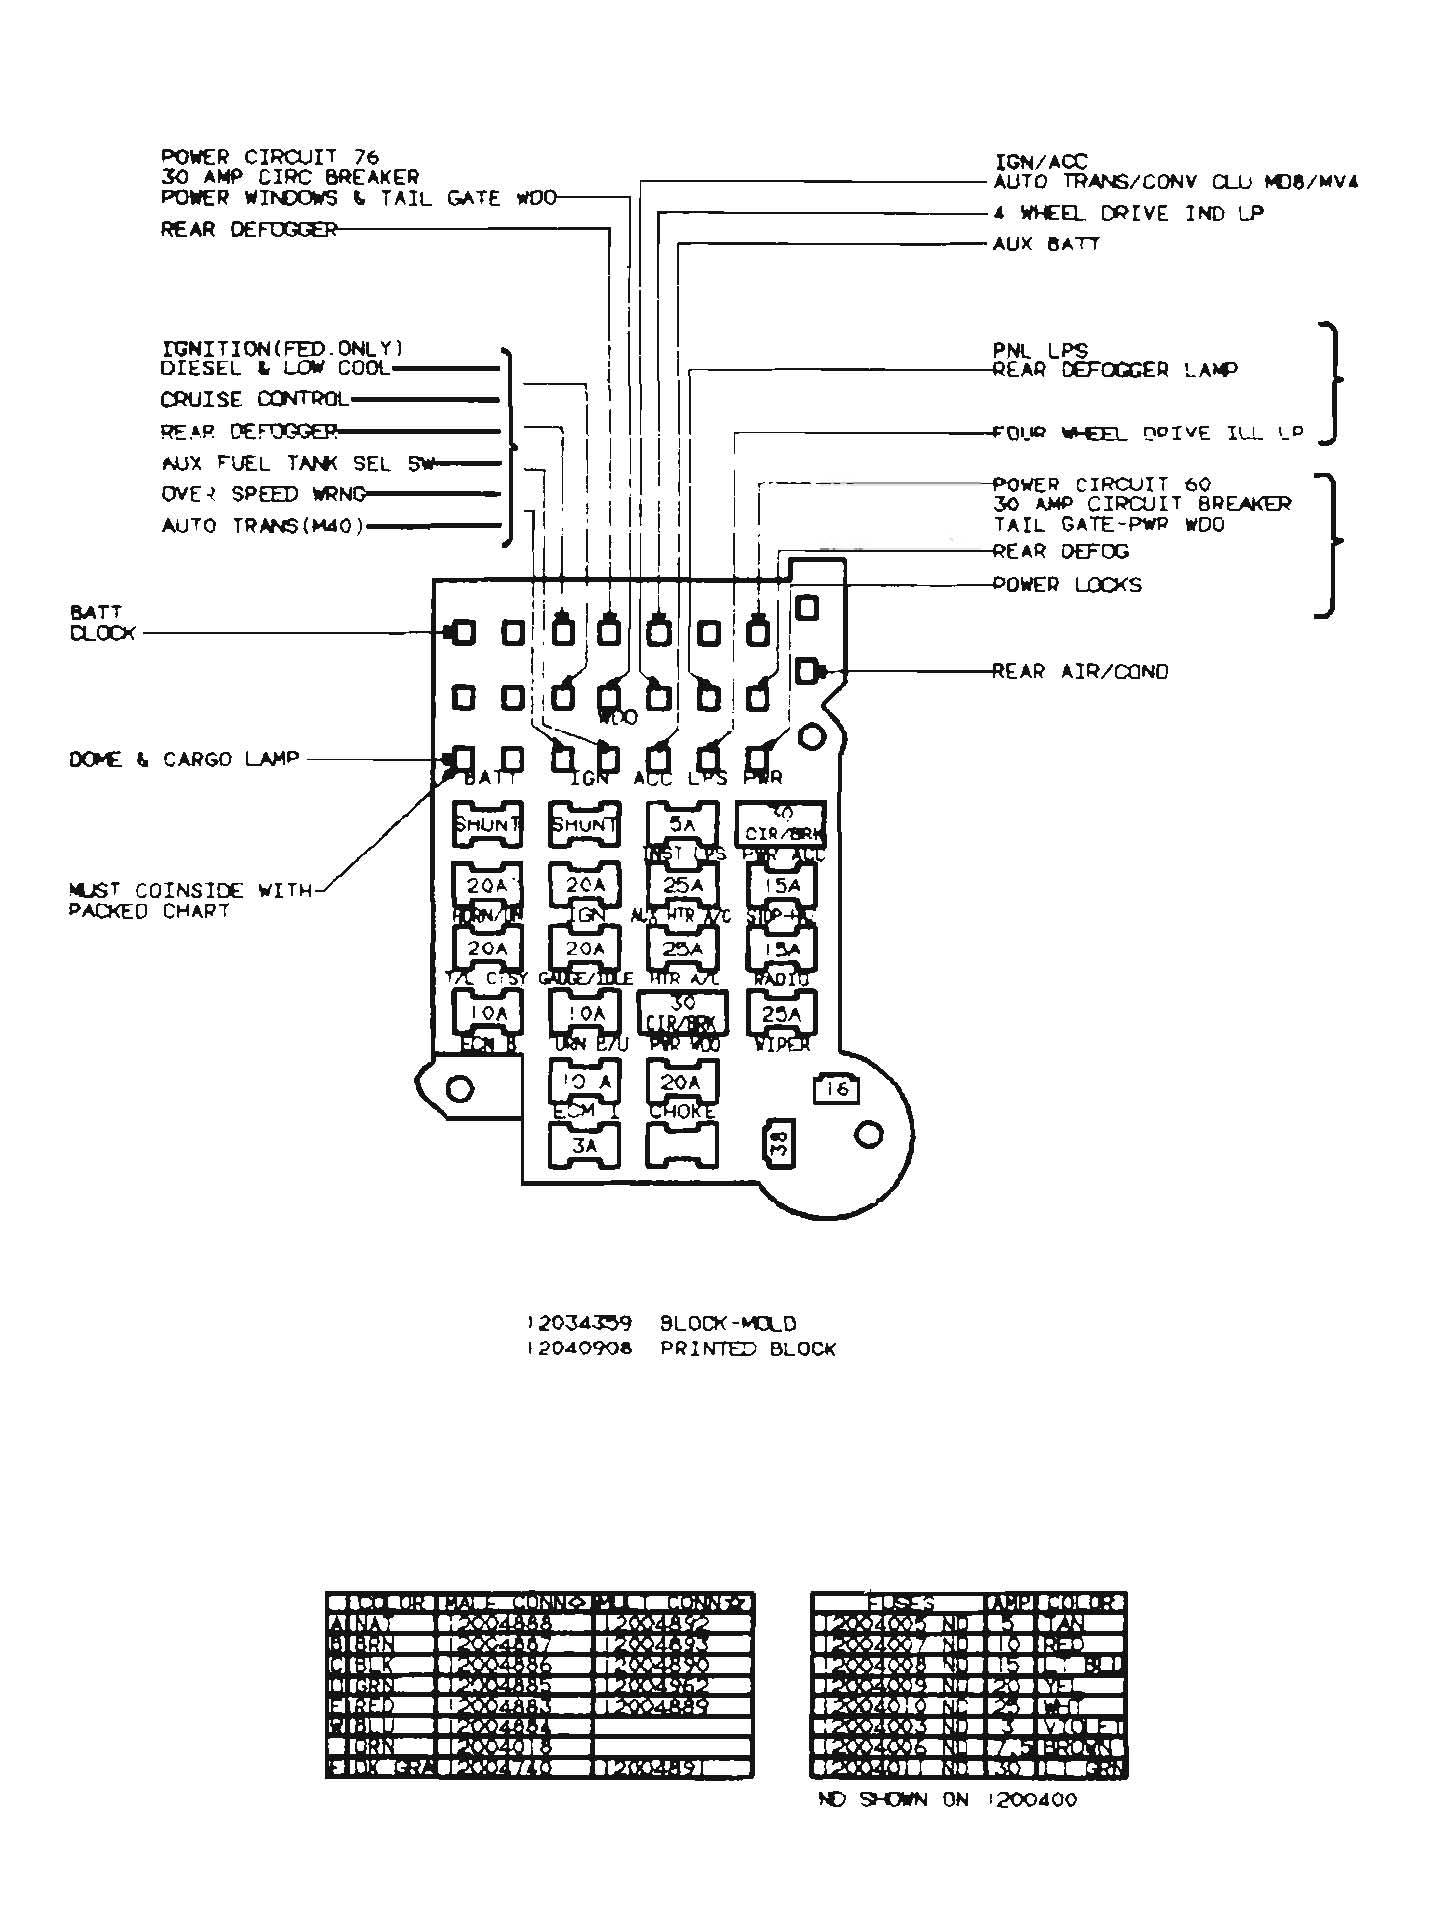 hight resolution of 1980 s10 fuse box schematic wiring diagrams chevy s10 fuse box 88 s10 fuse box